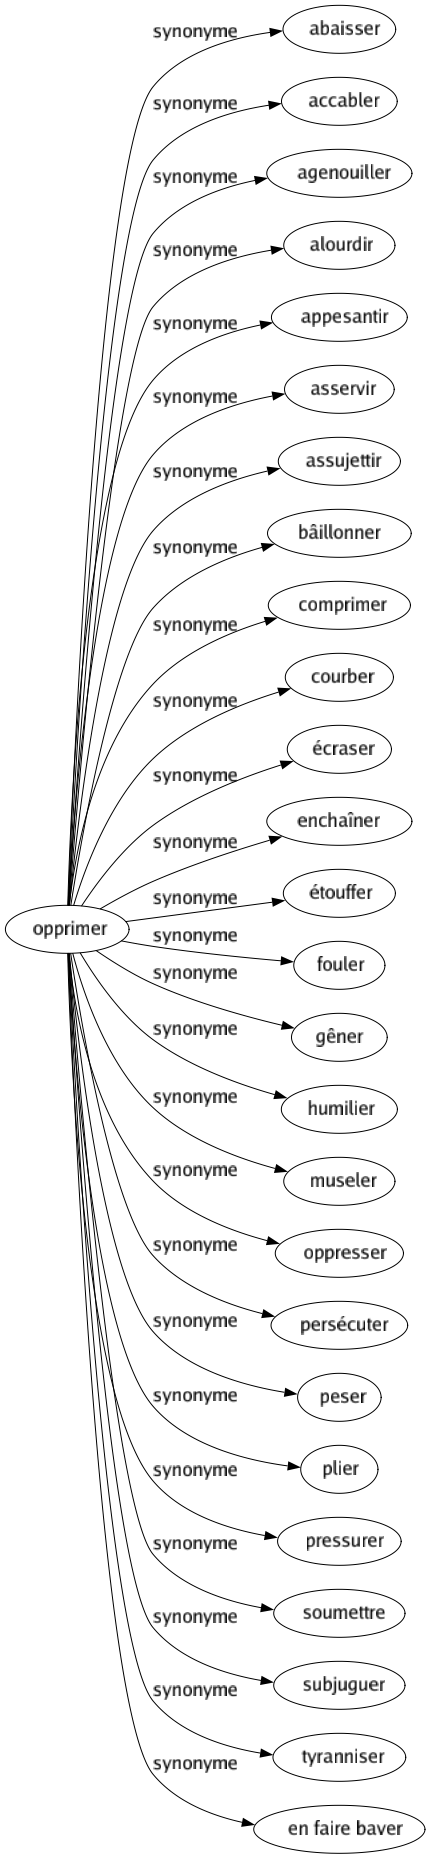 Dominer Synonyme